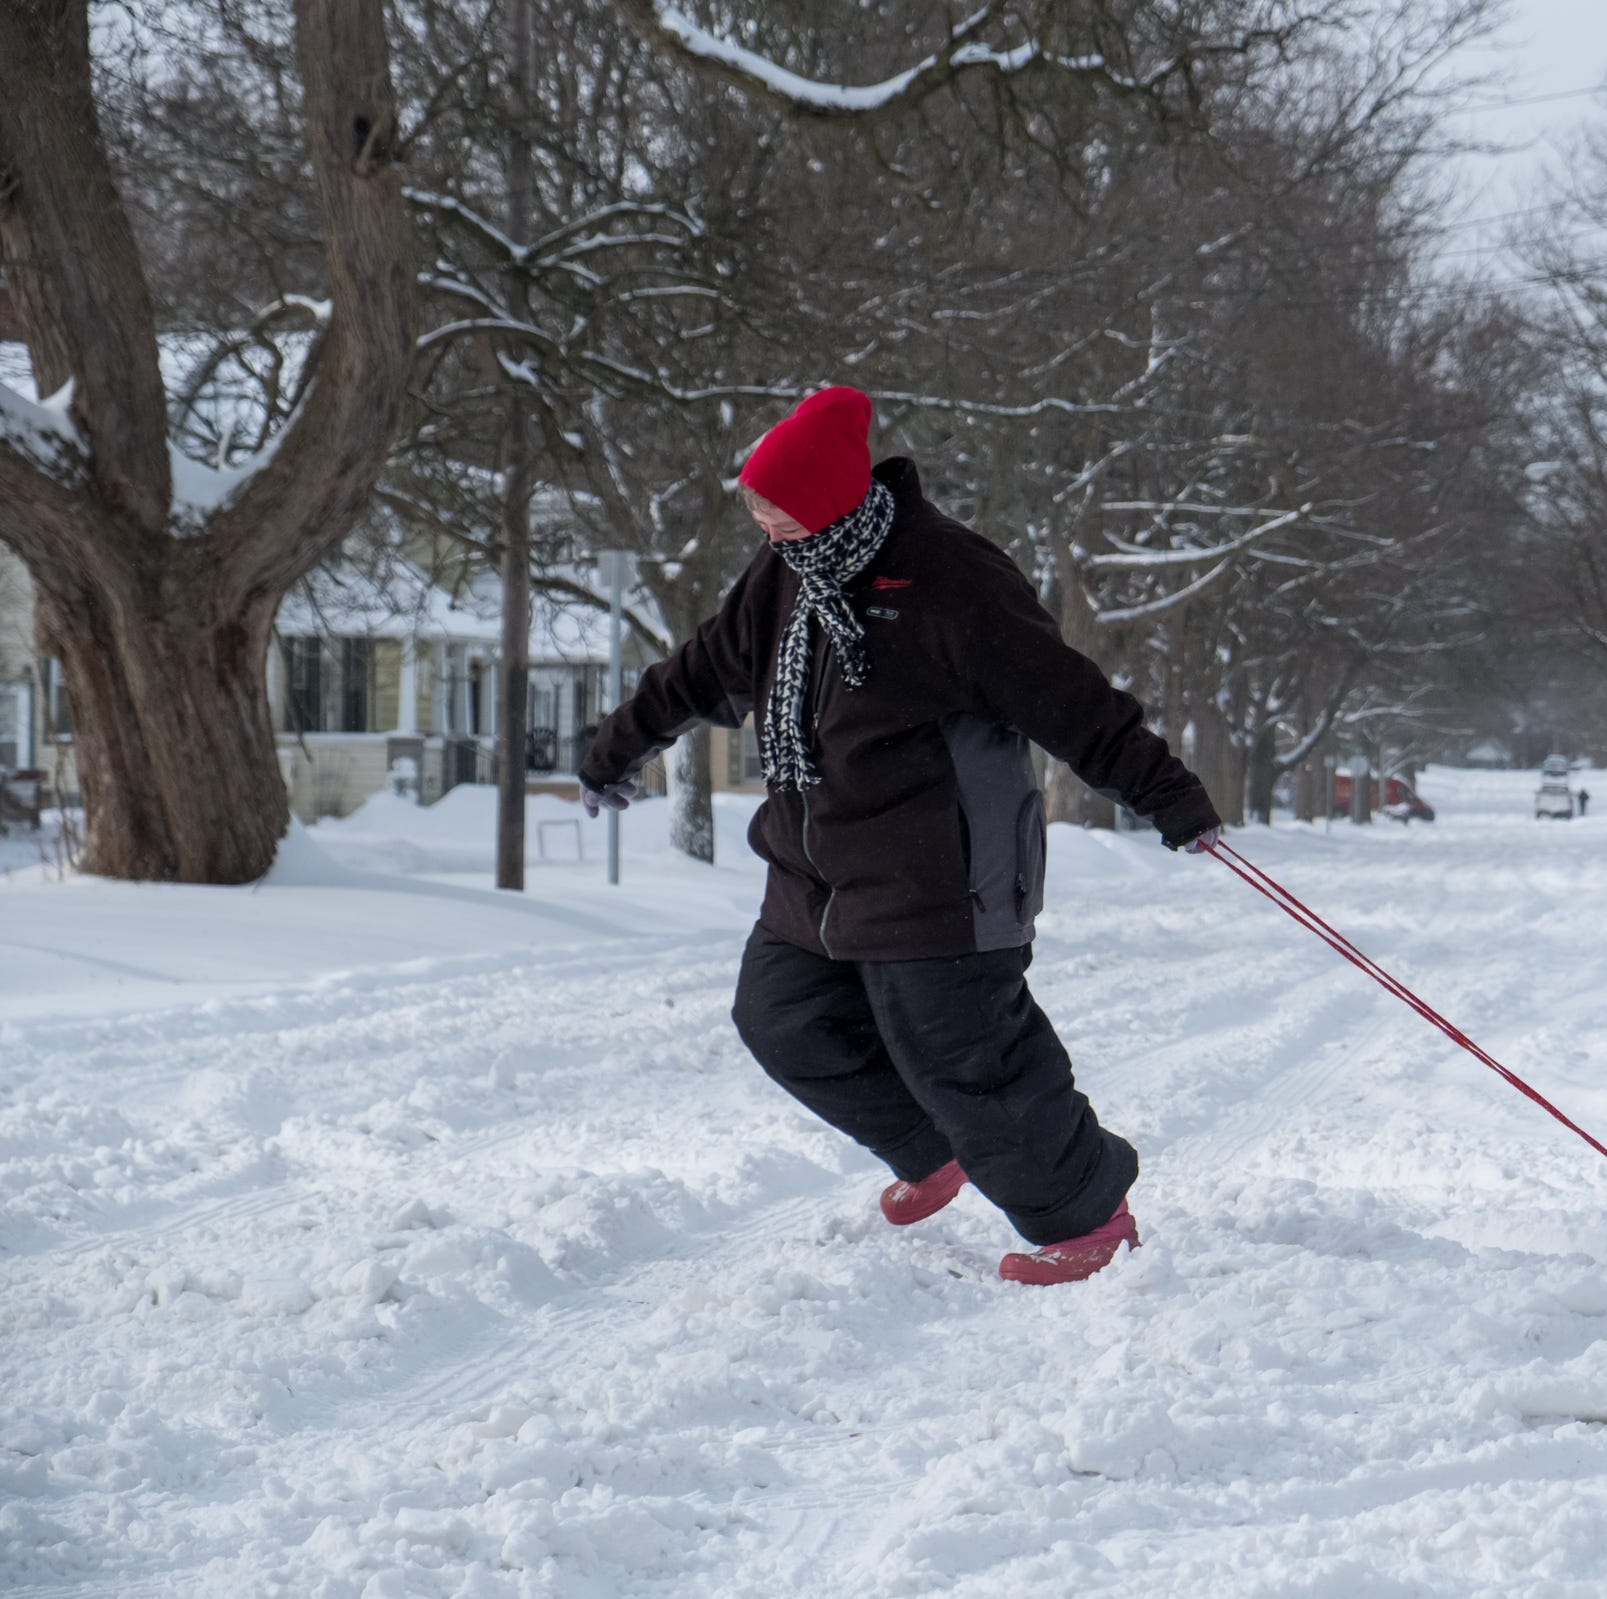 Michigan lawmakers may forgive snow days after frigid temperatures